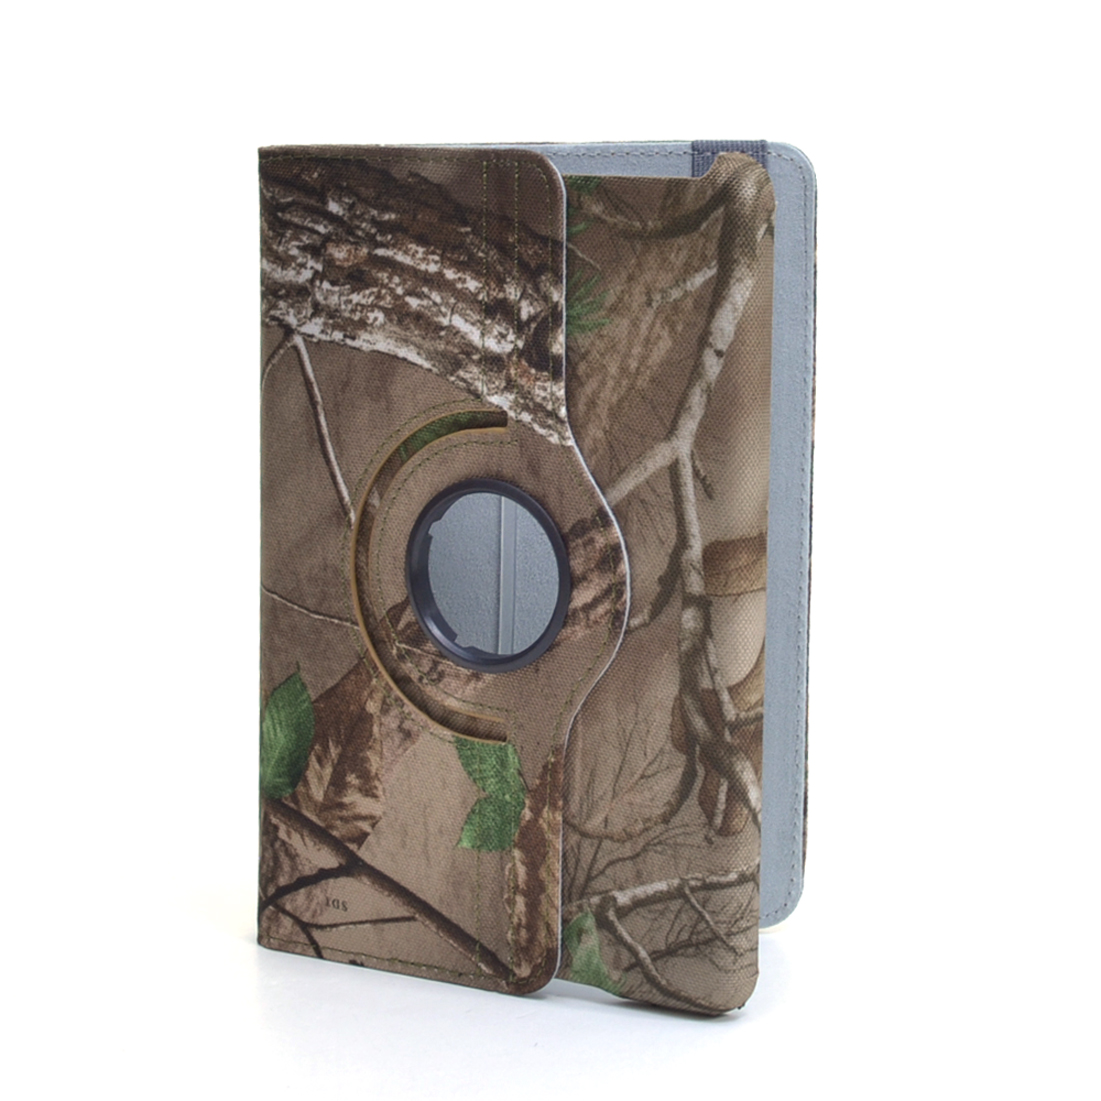 Realtree® Camo iPad Mini2 (retina display) 360 Rotation XG